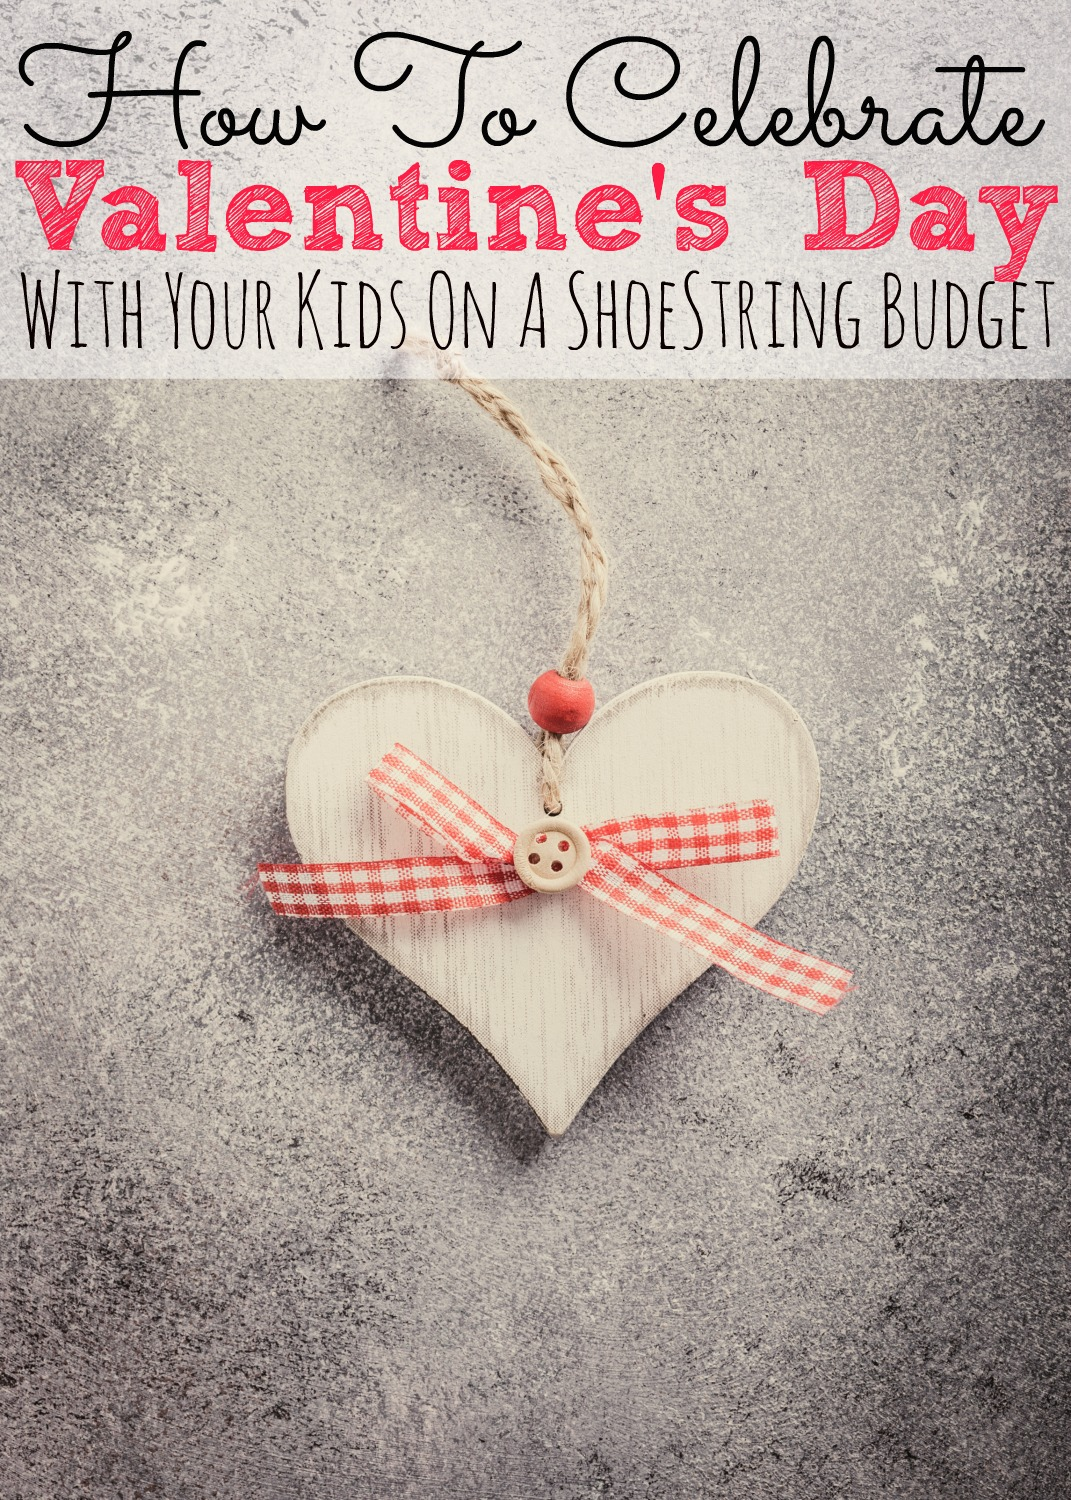 How to Celebrate Valentine's Day with your Kids on a Shoestring Budget - simplytodaylife.com